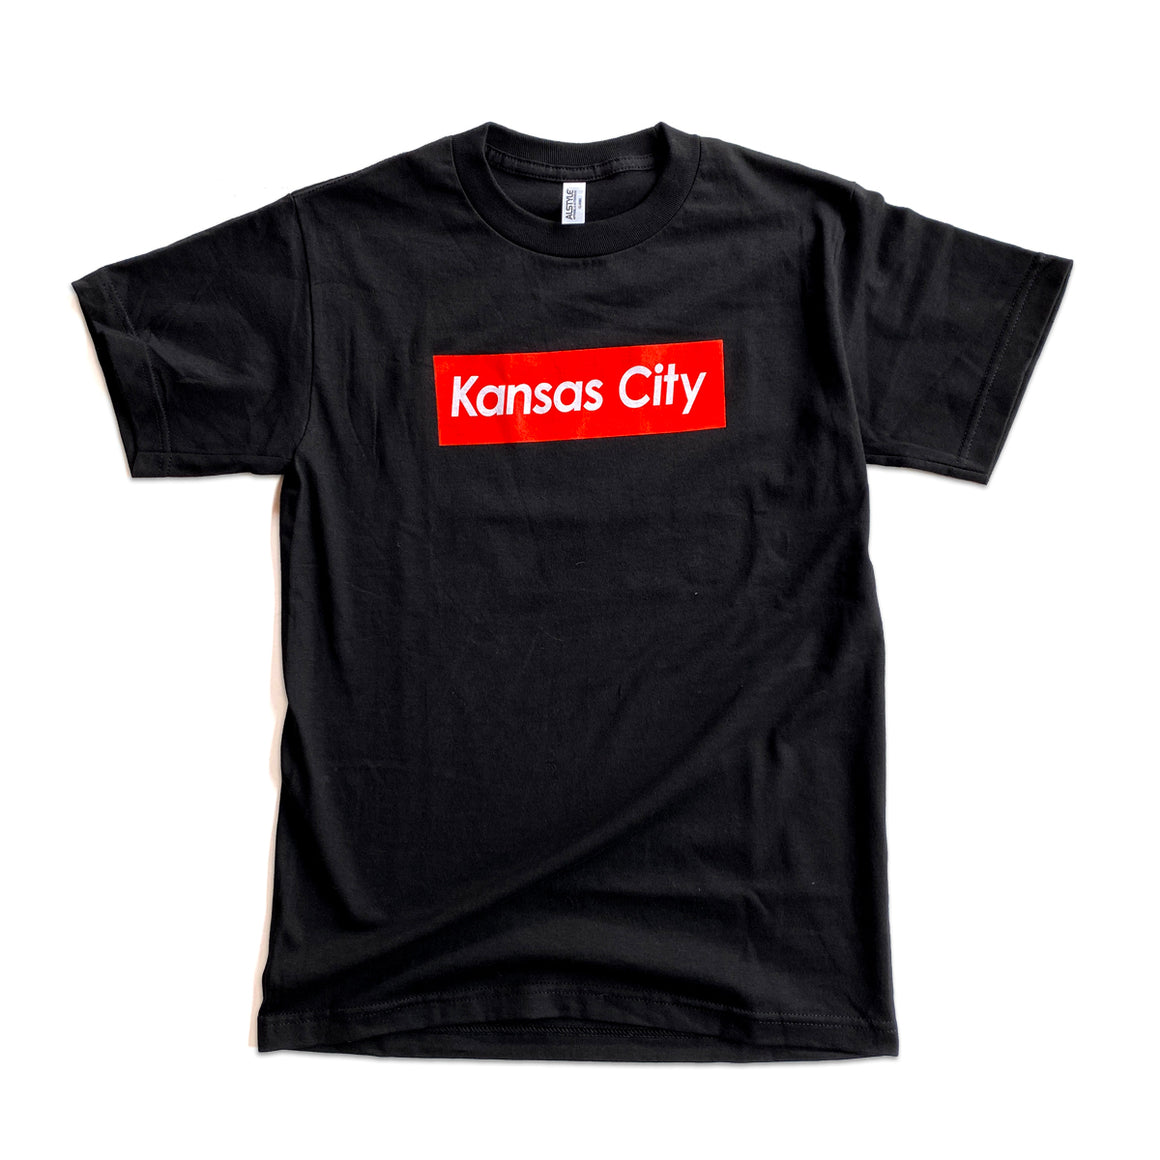 KCMO.CO | KANSAS CITY SUPREME T-SHIRT - BLACK/RED